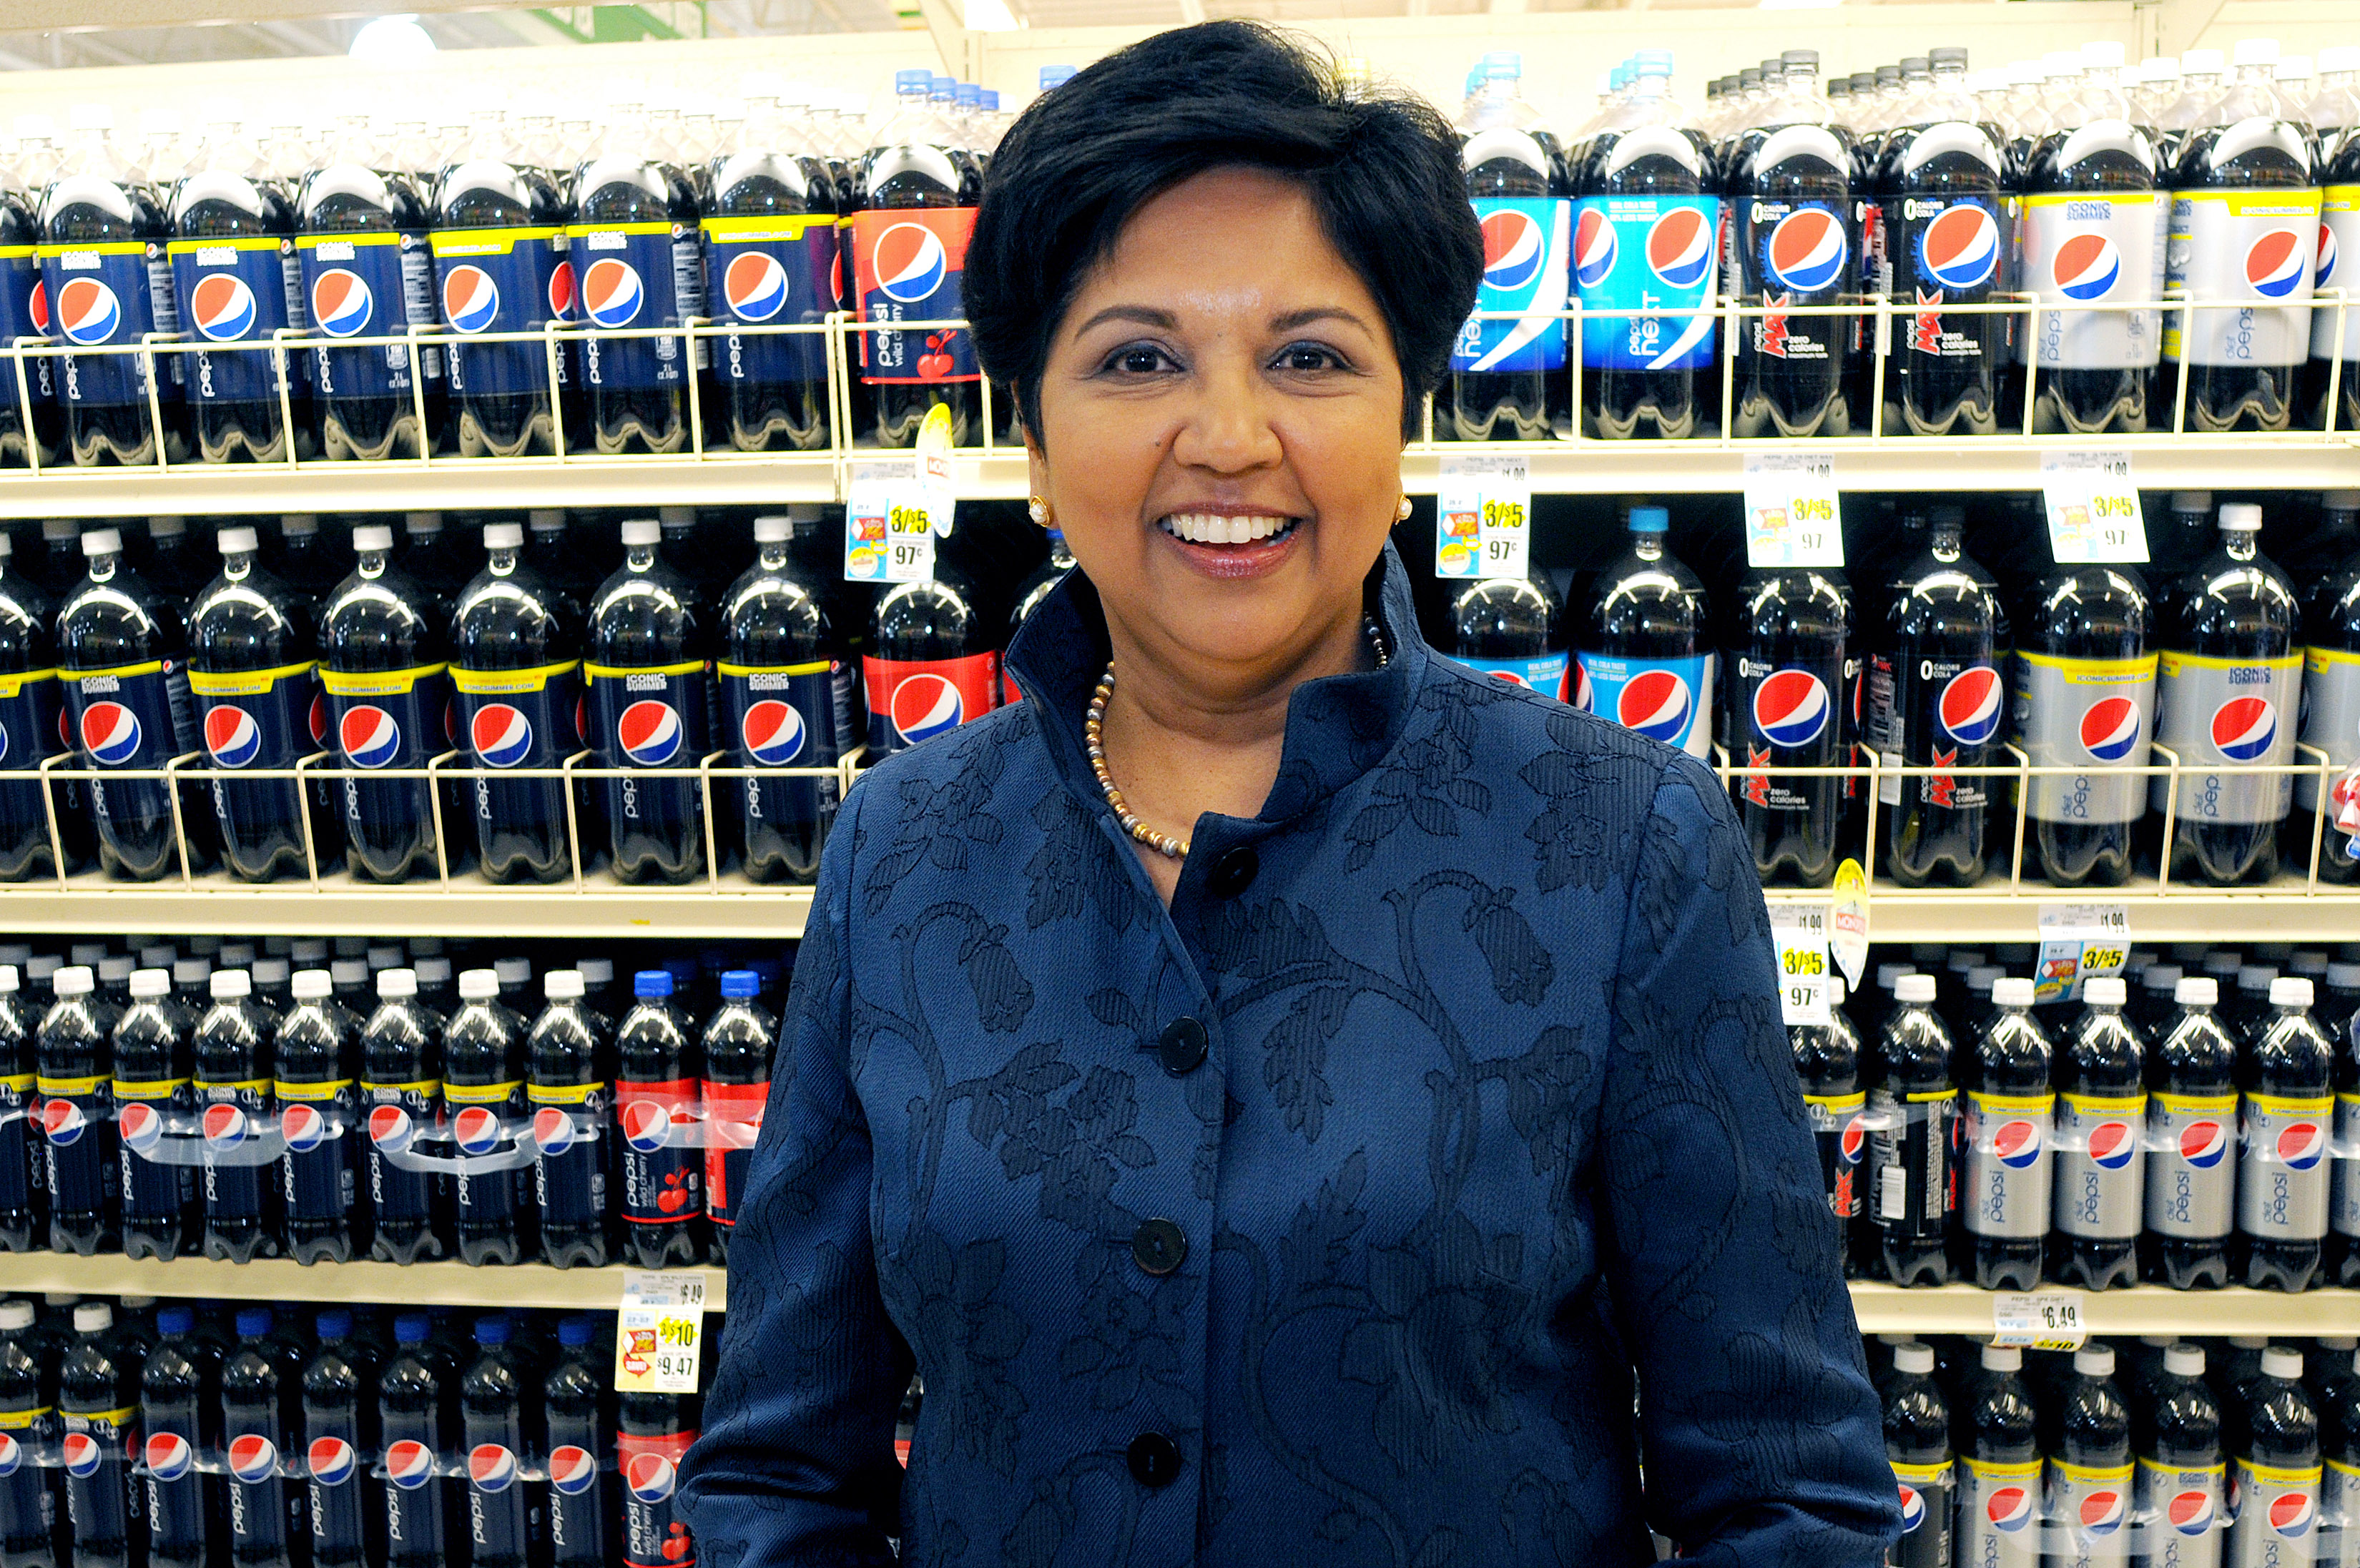 PepsiCo CEO Indra Nooyi poses for a portrait by products at the Tops SuperMarket in Batavia